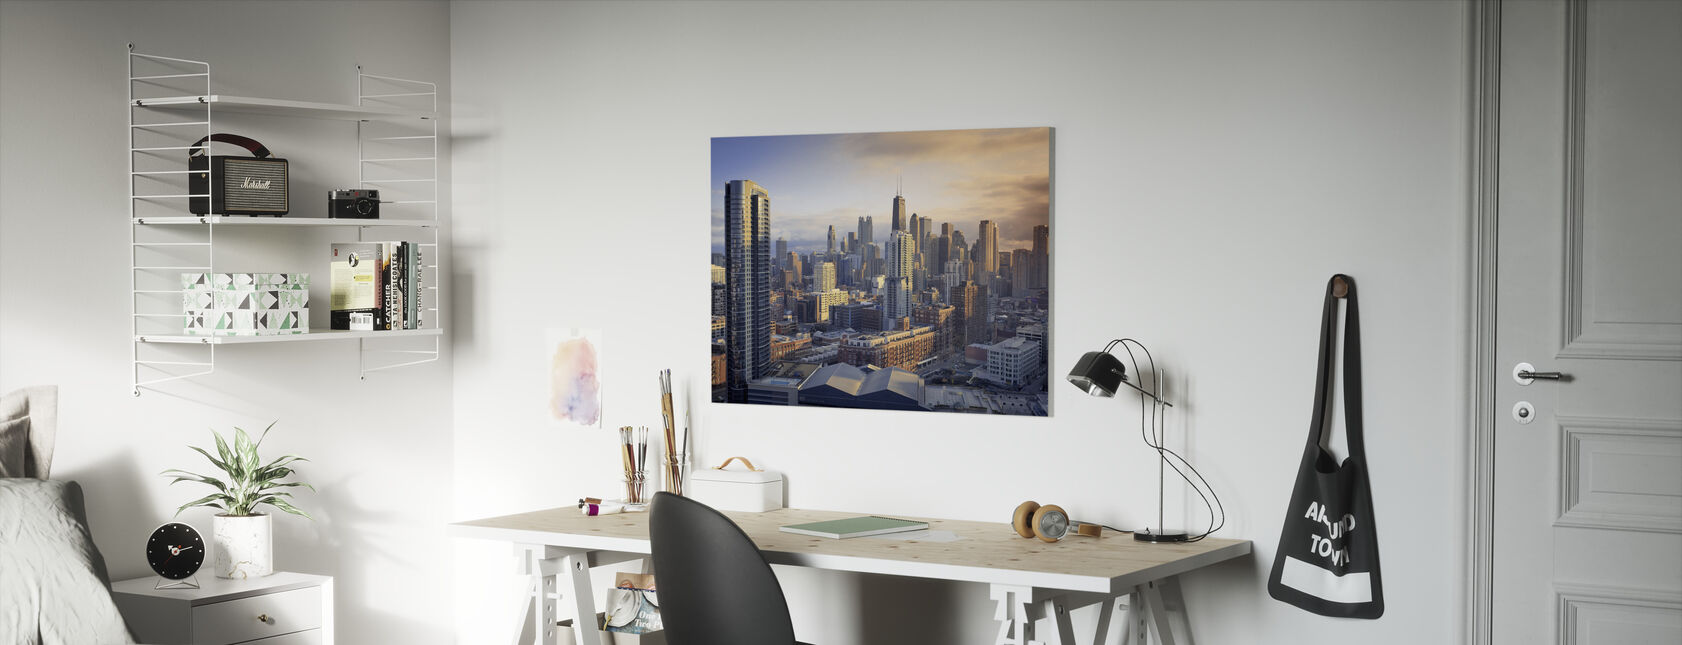 Chicago Symfonie - Canvas print - Kinderkamer